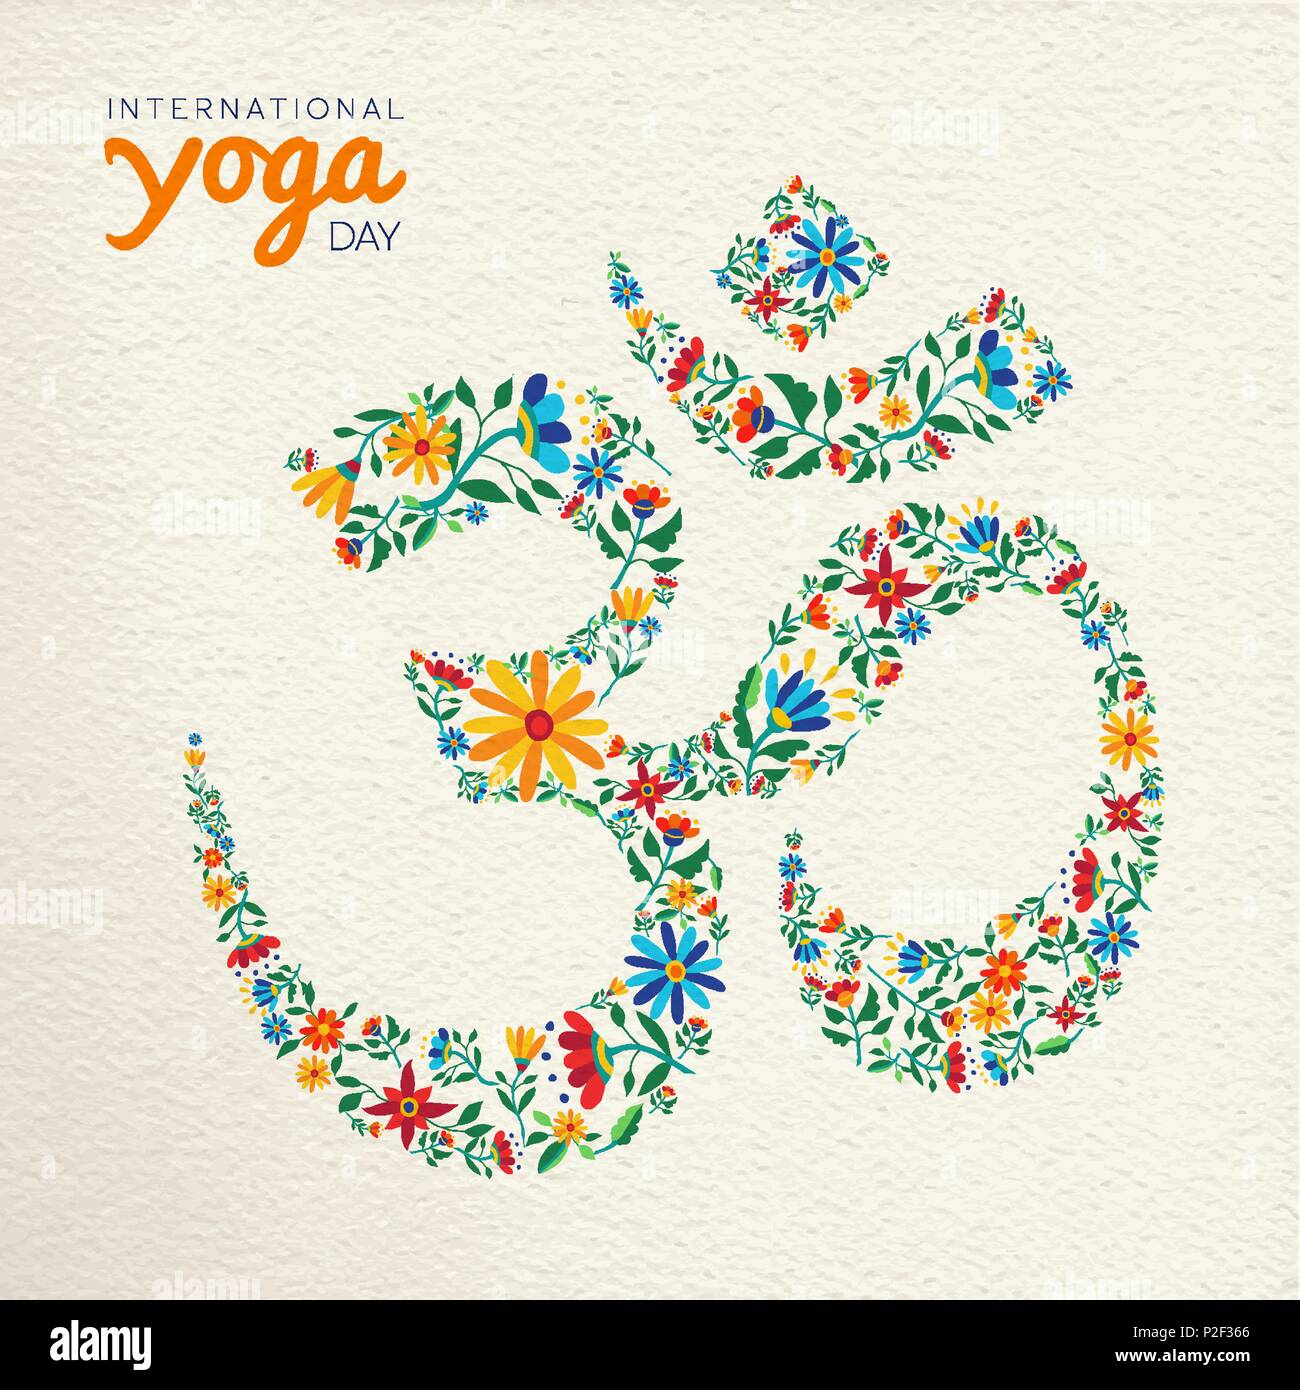 Om symbol stock photos om symbol stock images alamy international yoga day greeting card om symbol made of flower decoration spiritual sign on izmirmasajfo